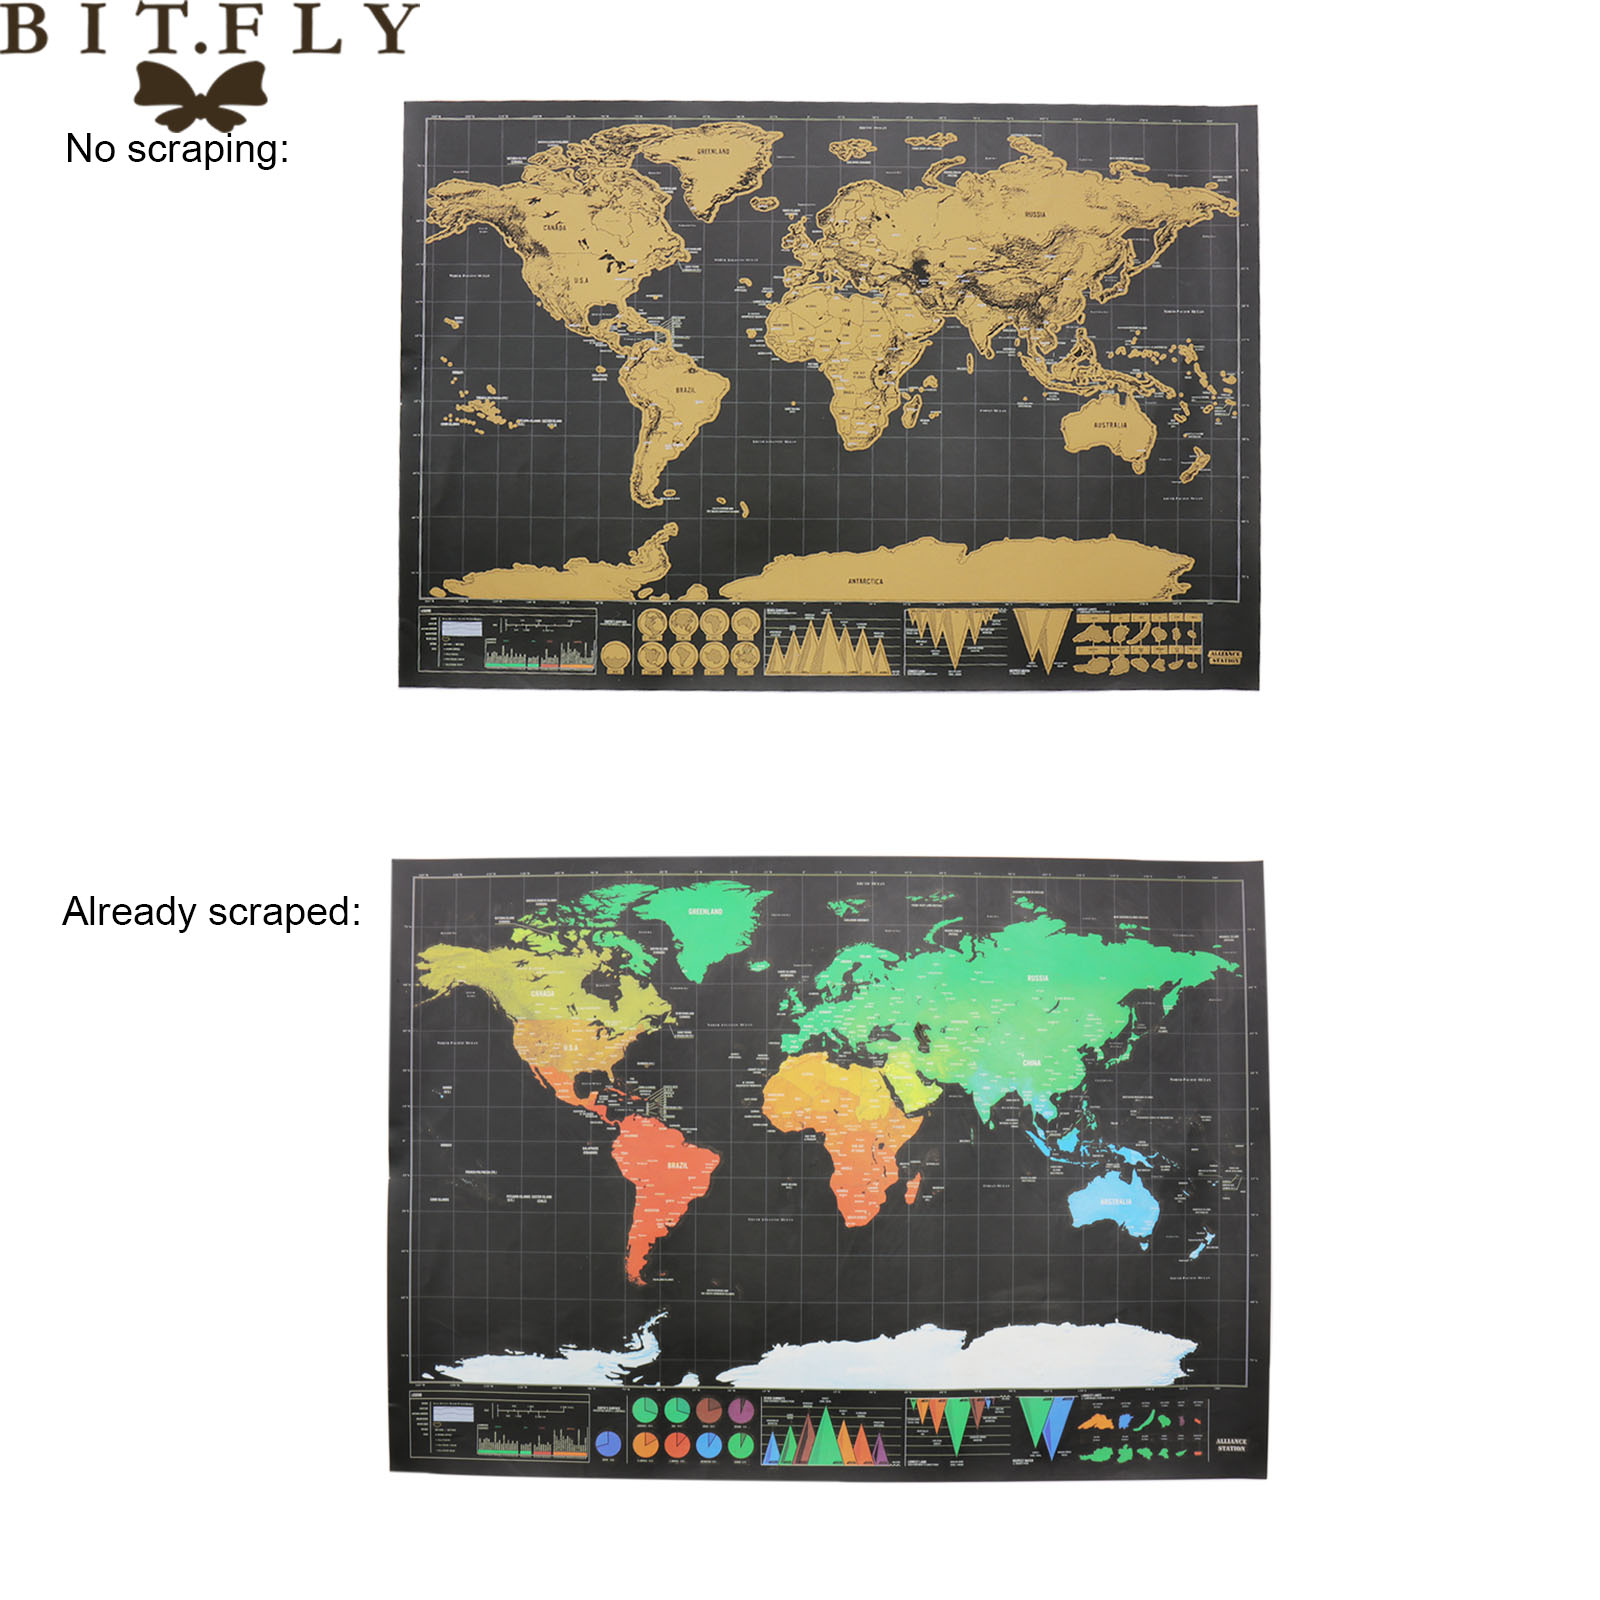 BITFLY 1 PCS Scratch Map New Design Black Deluxe Maps Travelwr Scratch Off World Best Gift For Education School Office Supplies